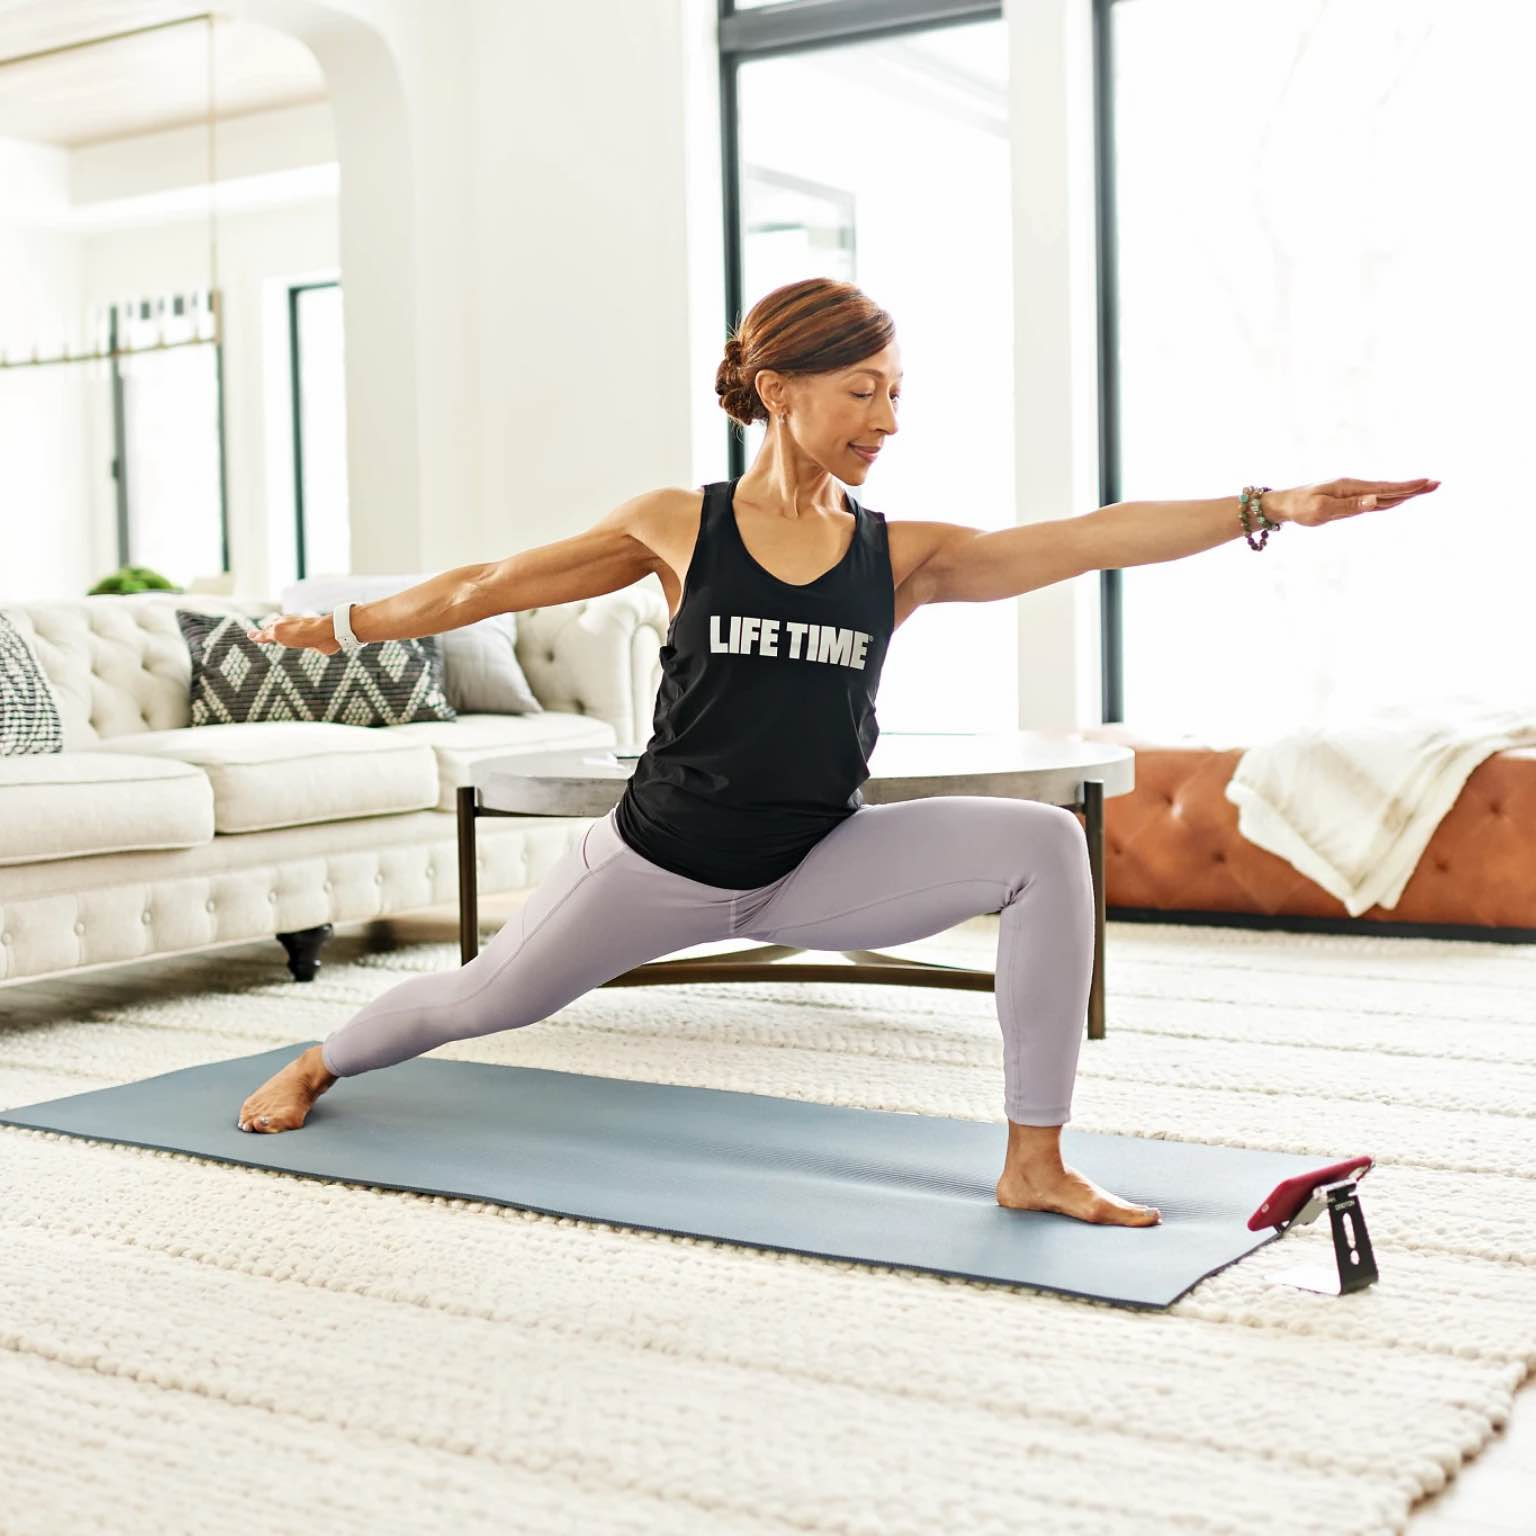 Woman with Life Time tank top does yoga in her living room